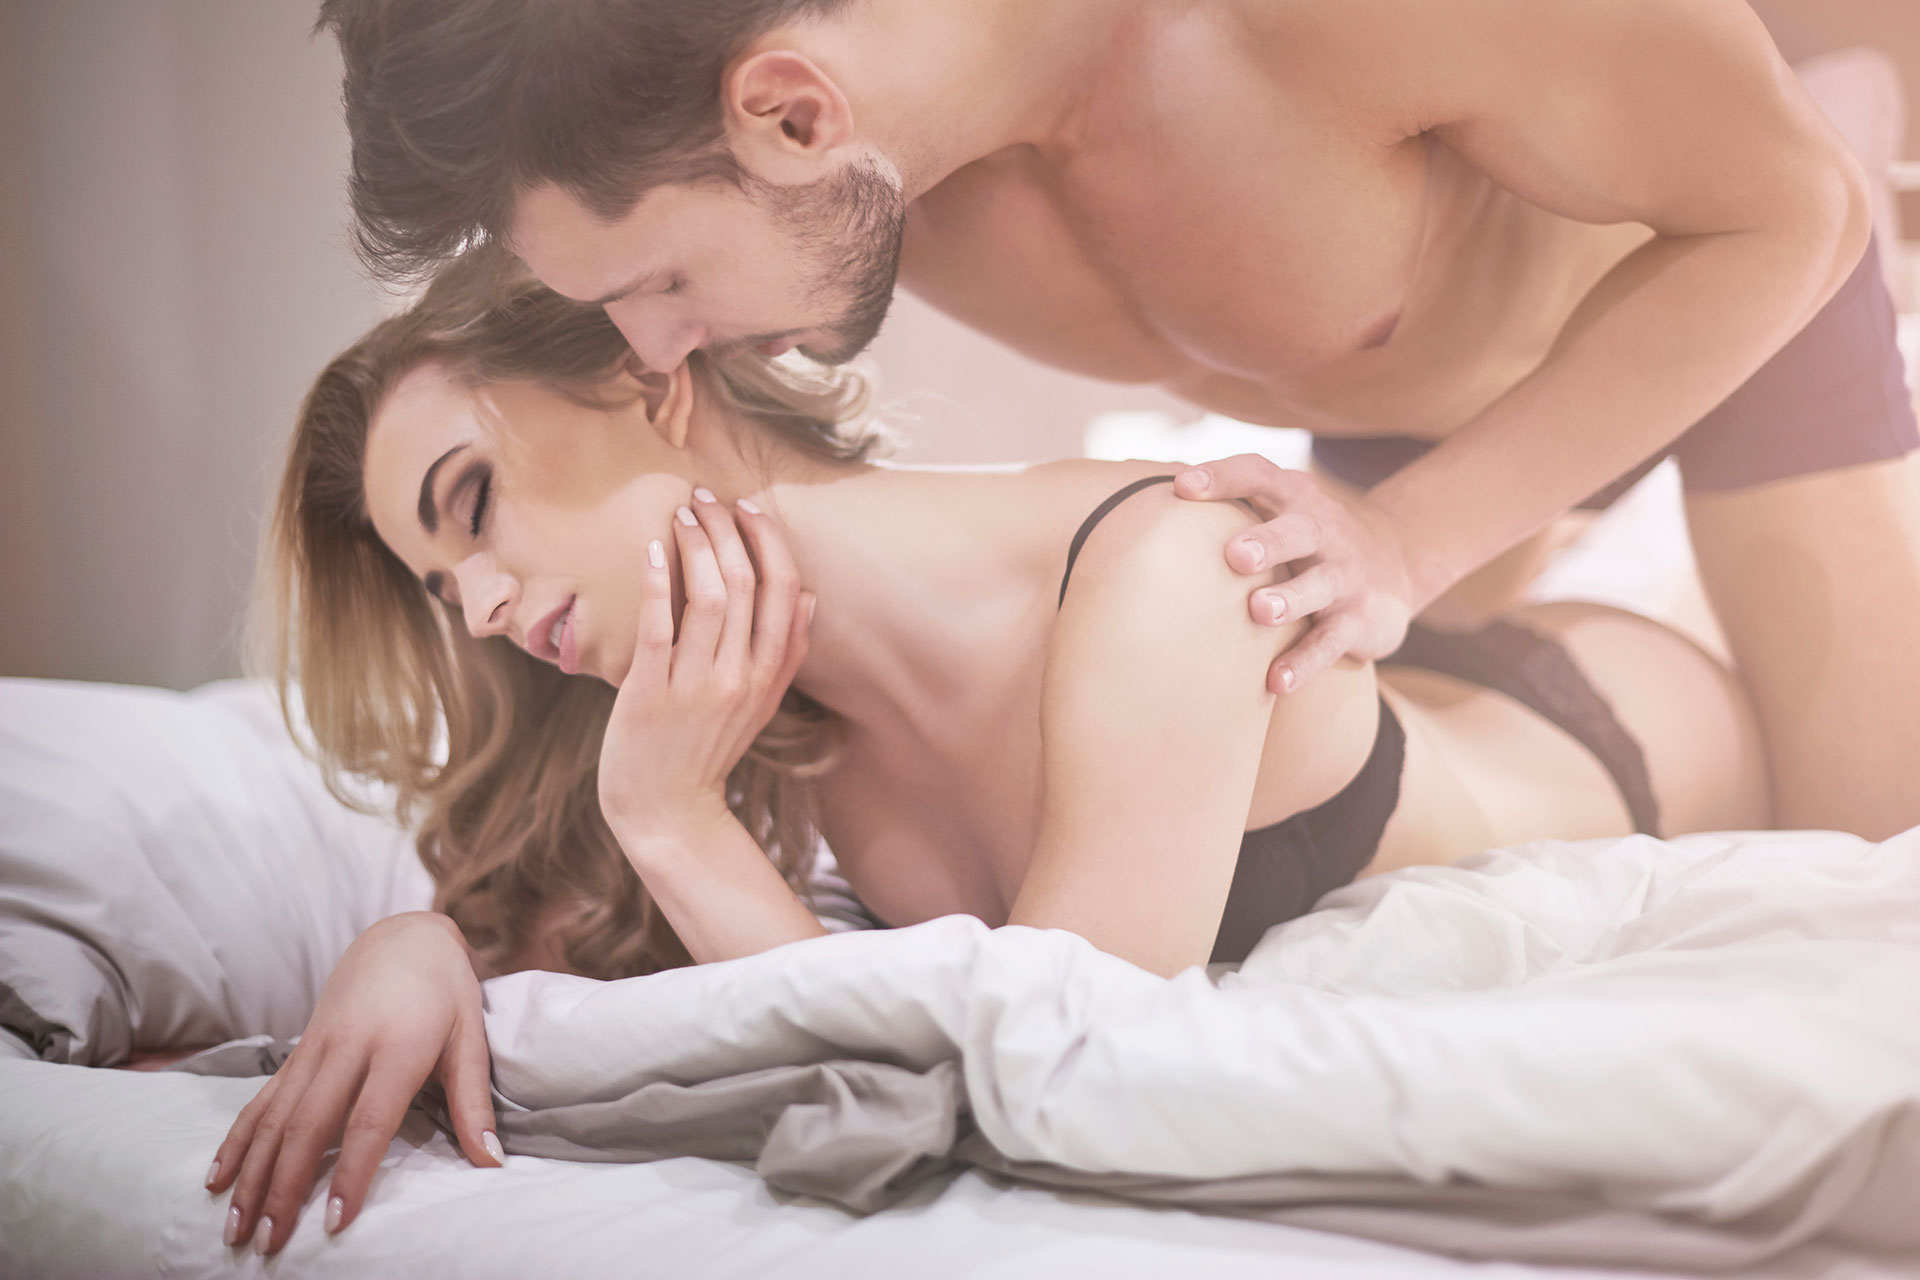 7 Ways to Spice Up Your Time in the Bedroom